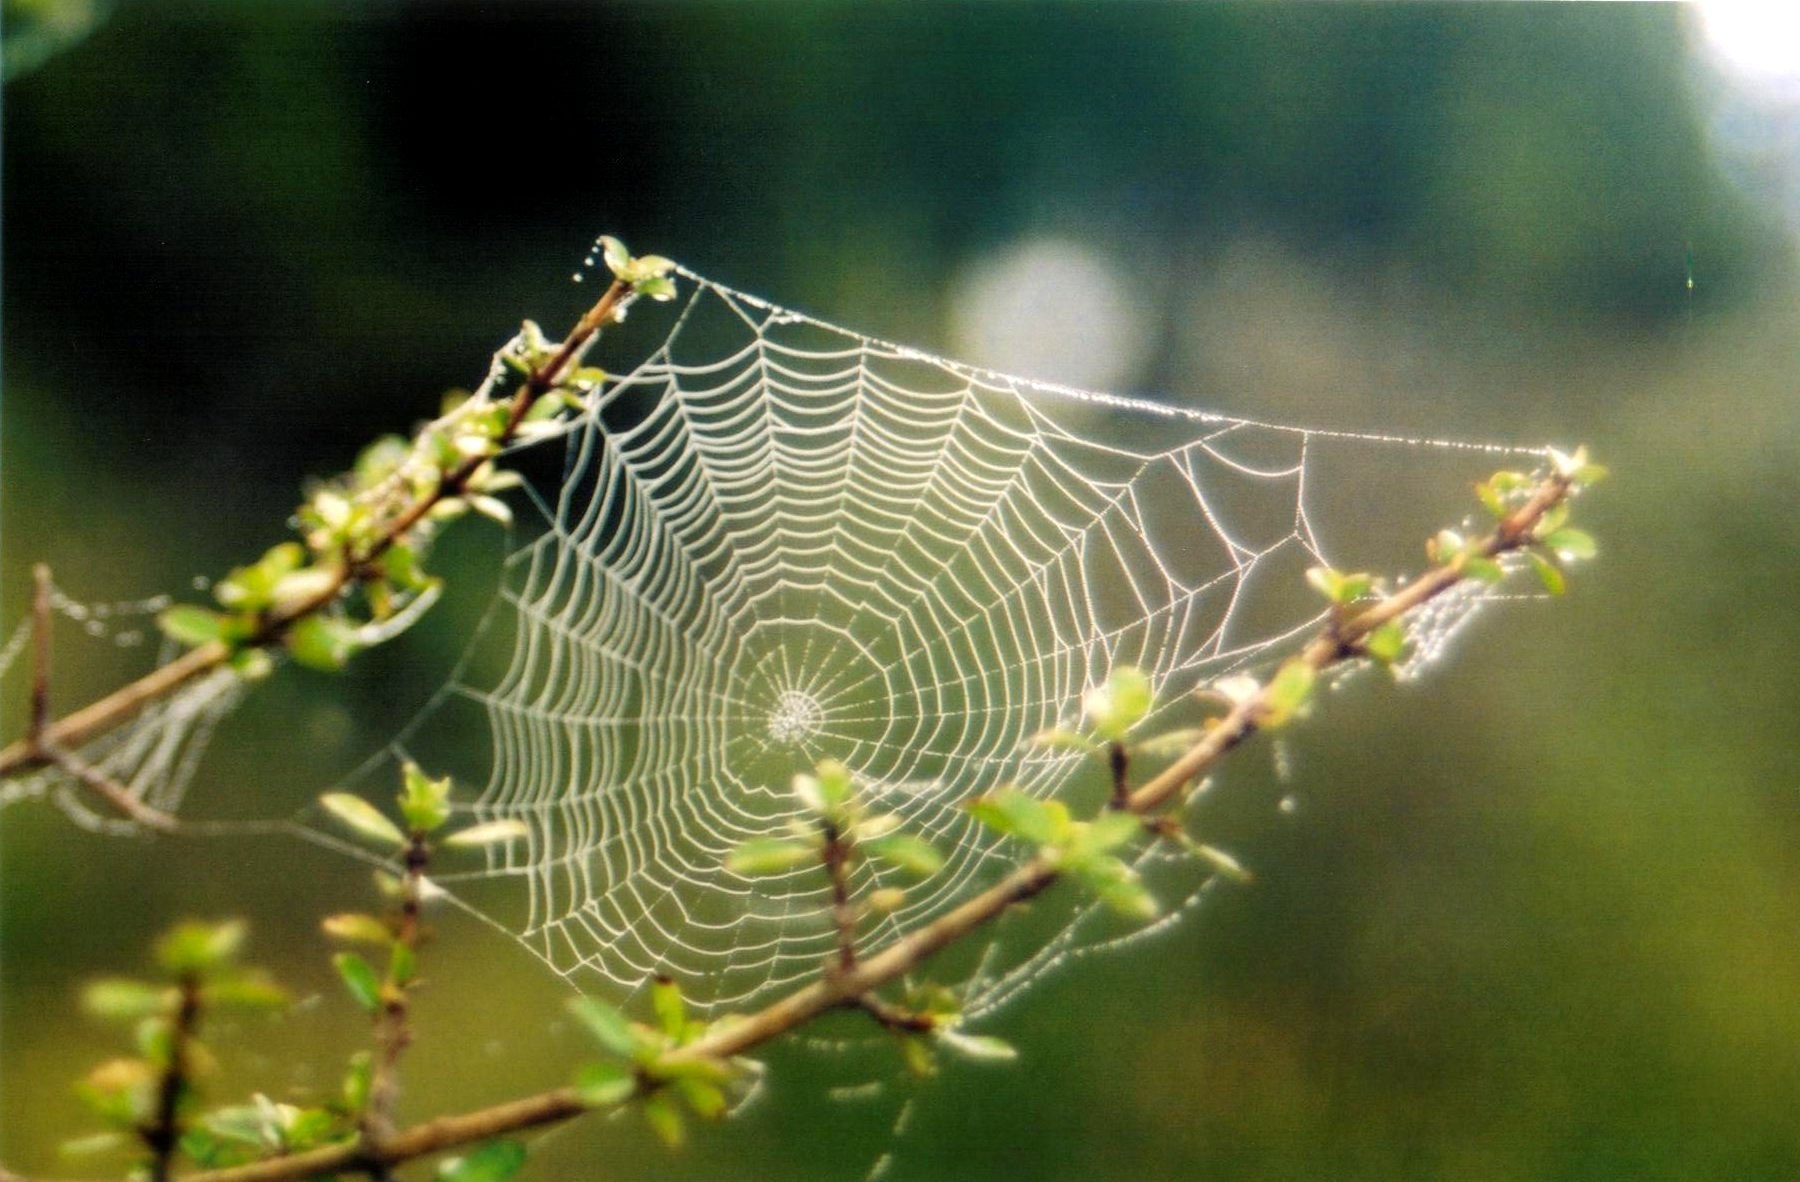 a cobweb with dew drops strung between two branches in new zealand